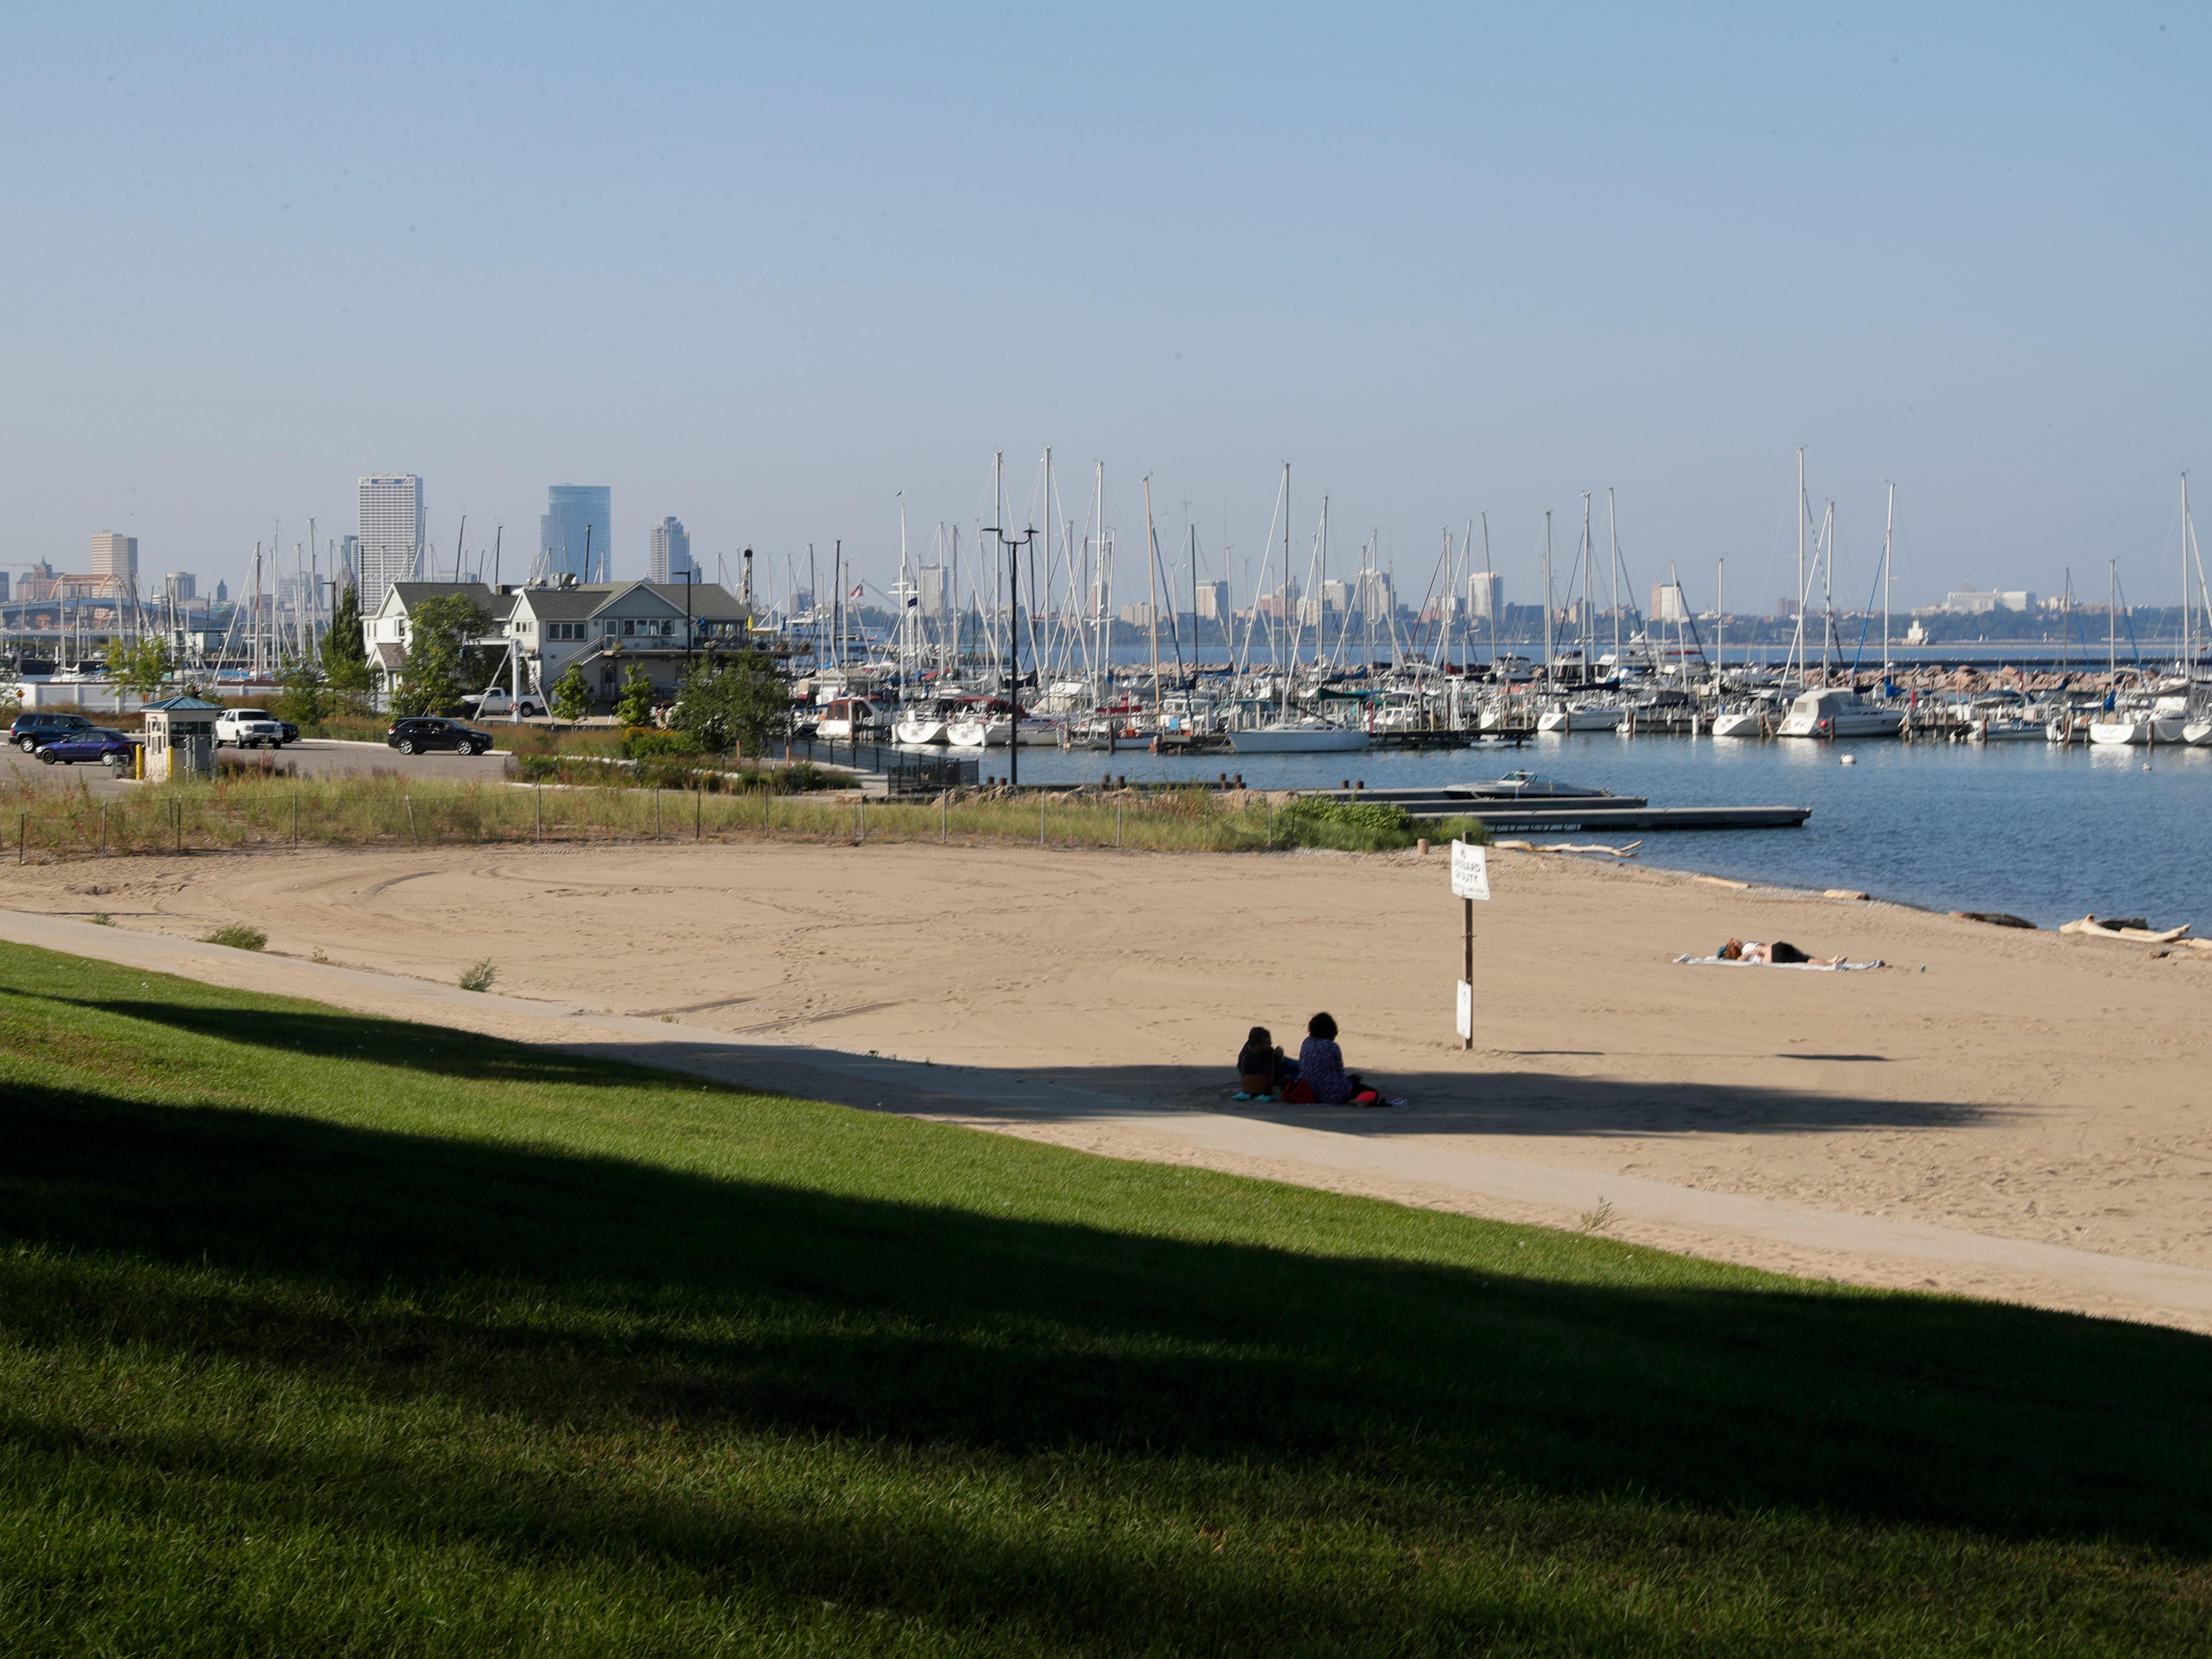 The South Shore Park beach is frequently closed in summer months due to E. coli contamination.